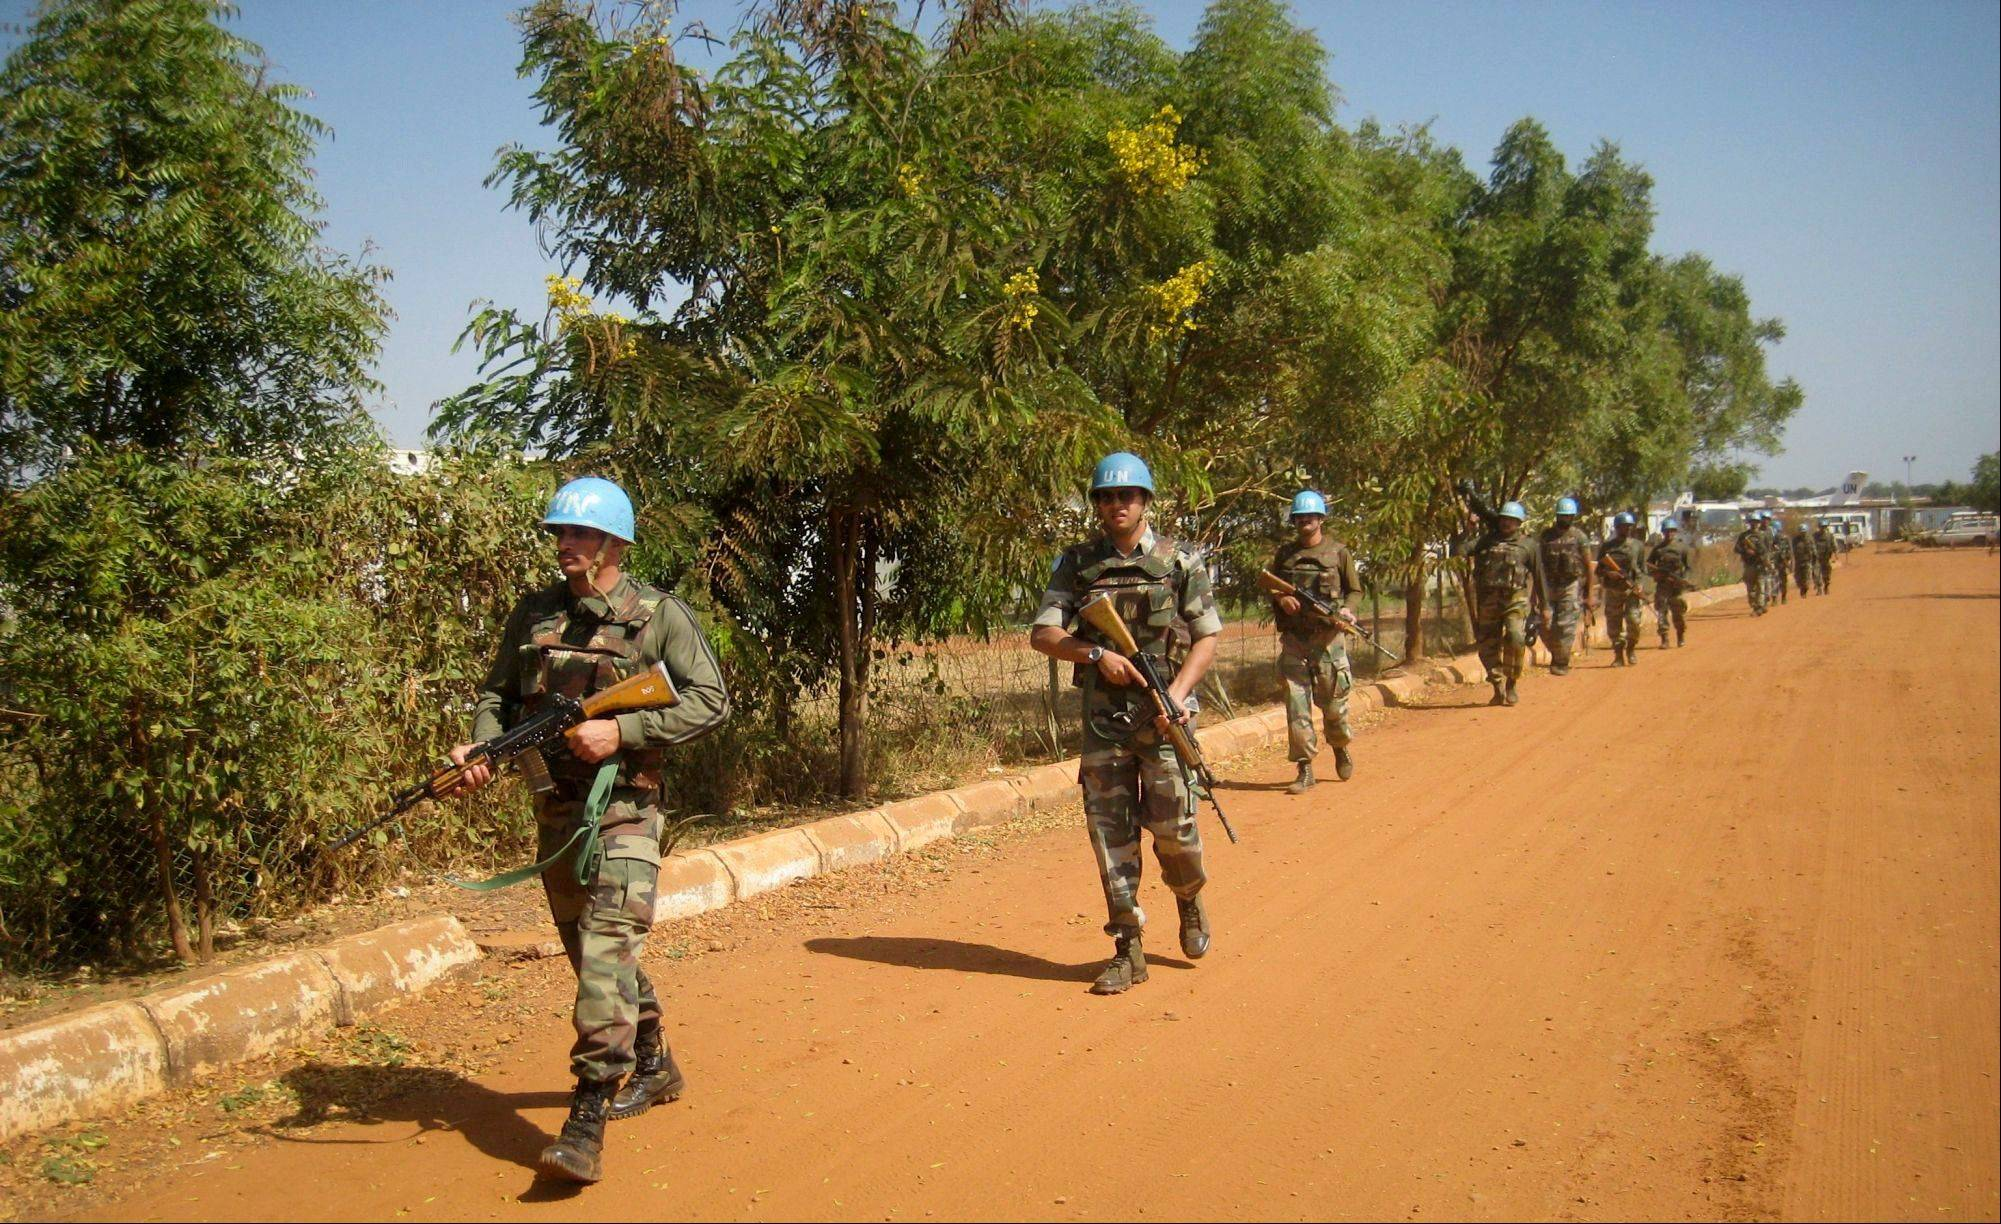 U.N. troops from India patrol at the compound in Juba, South Sudan. The U.N.�s humanitarian arm said Friday that 34,000 people in South Sudan are seeking refuge at U.N. bases in three locations across the country.